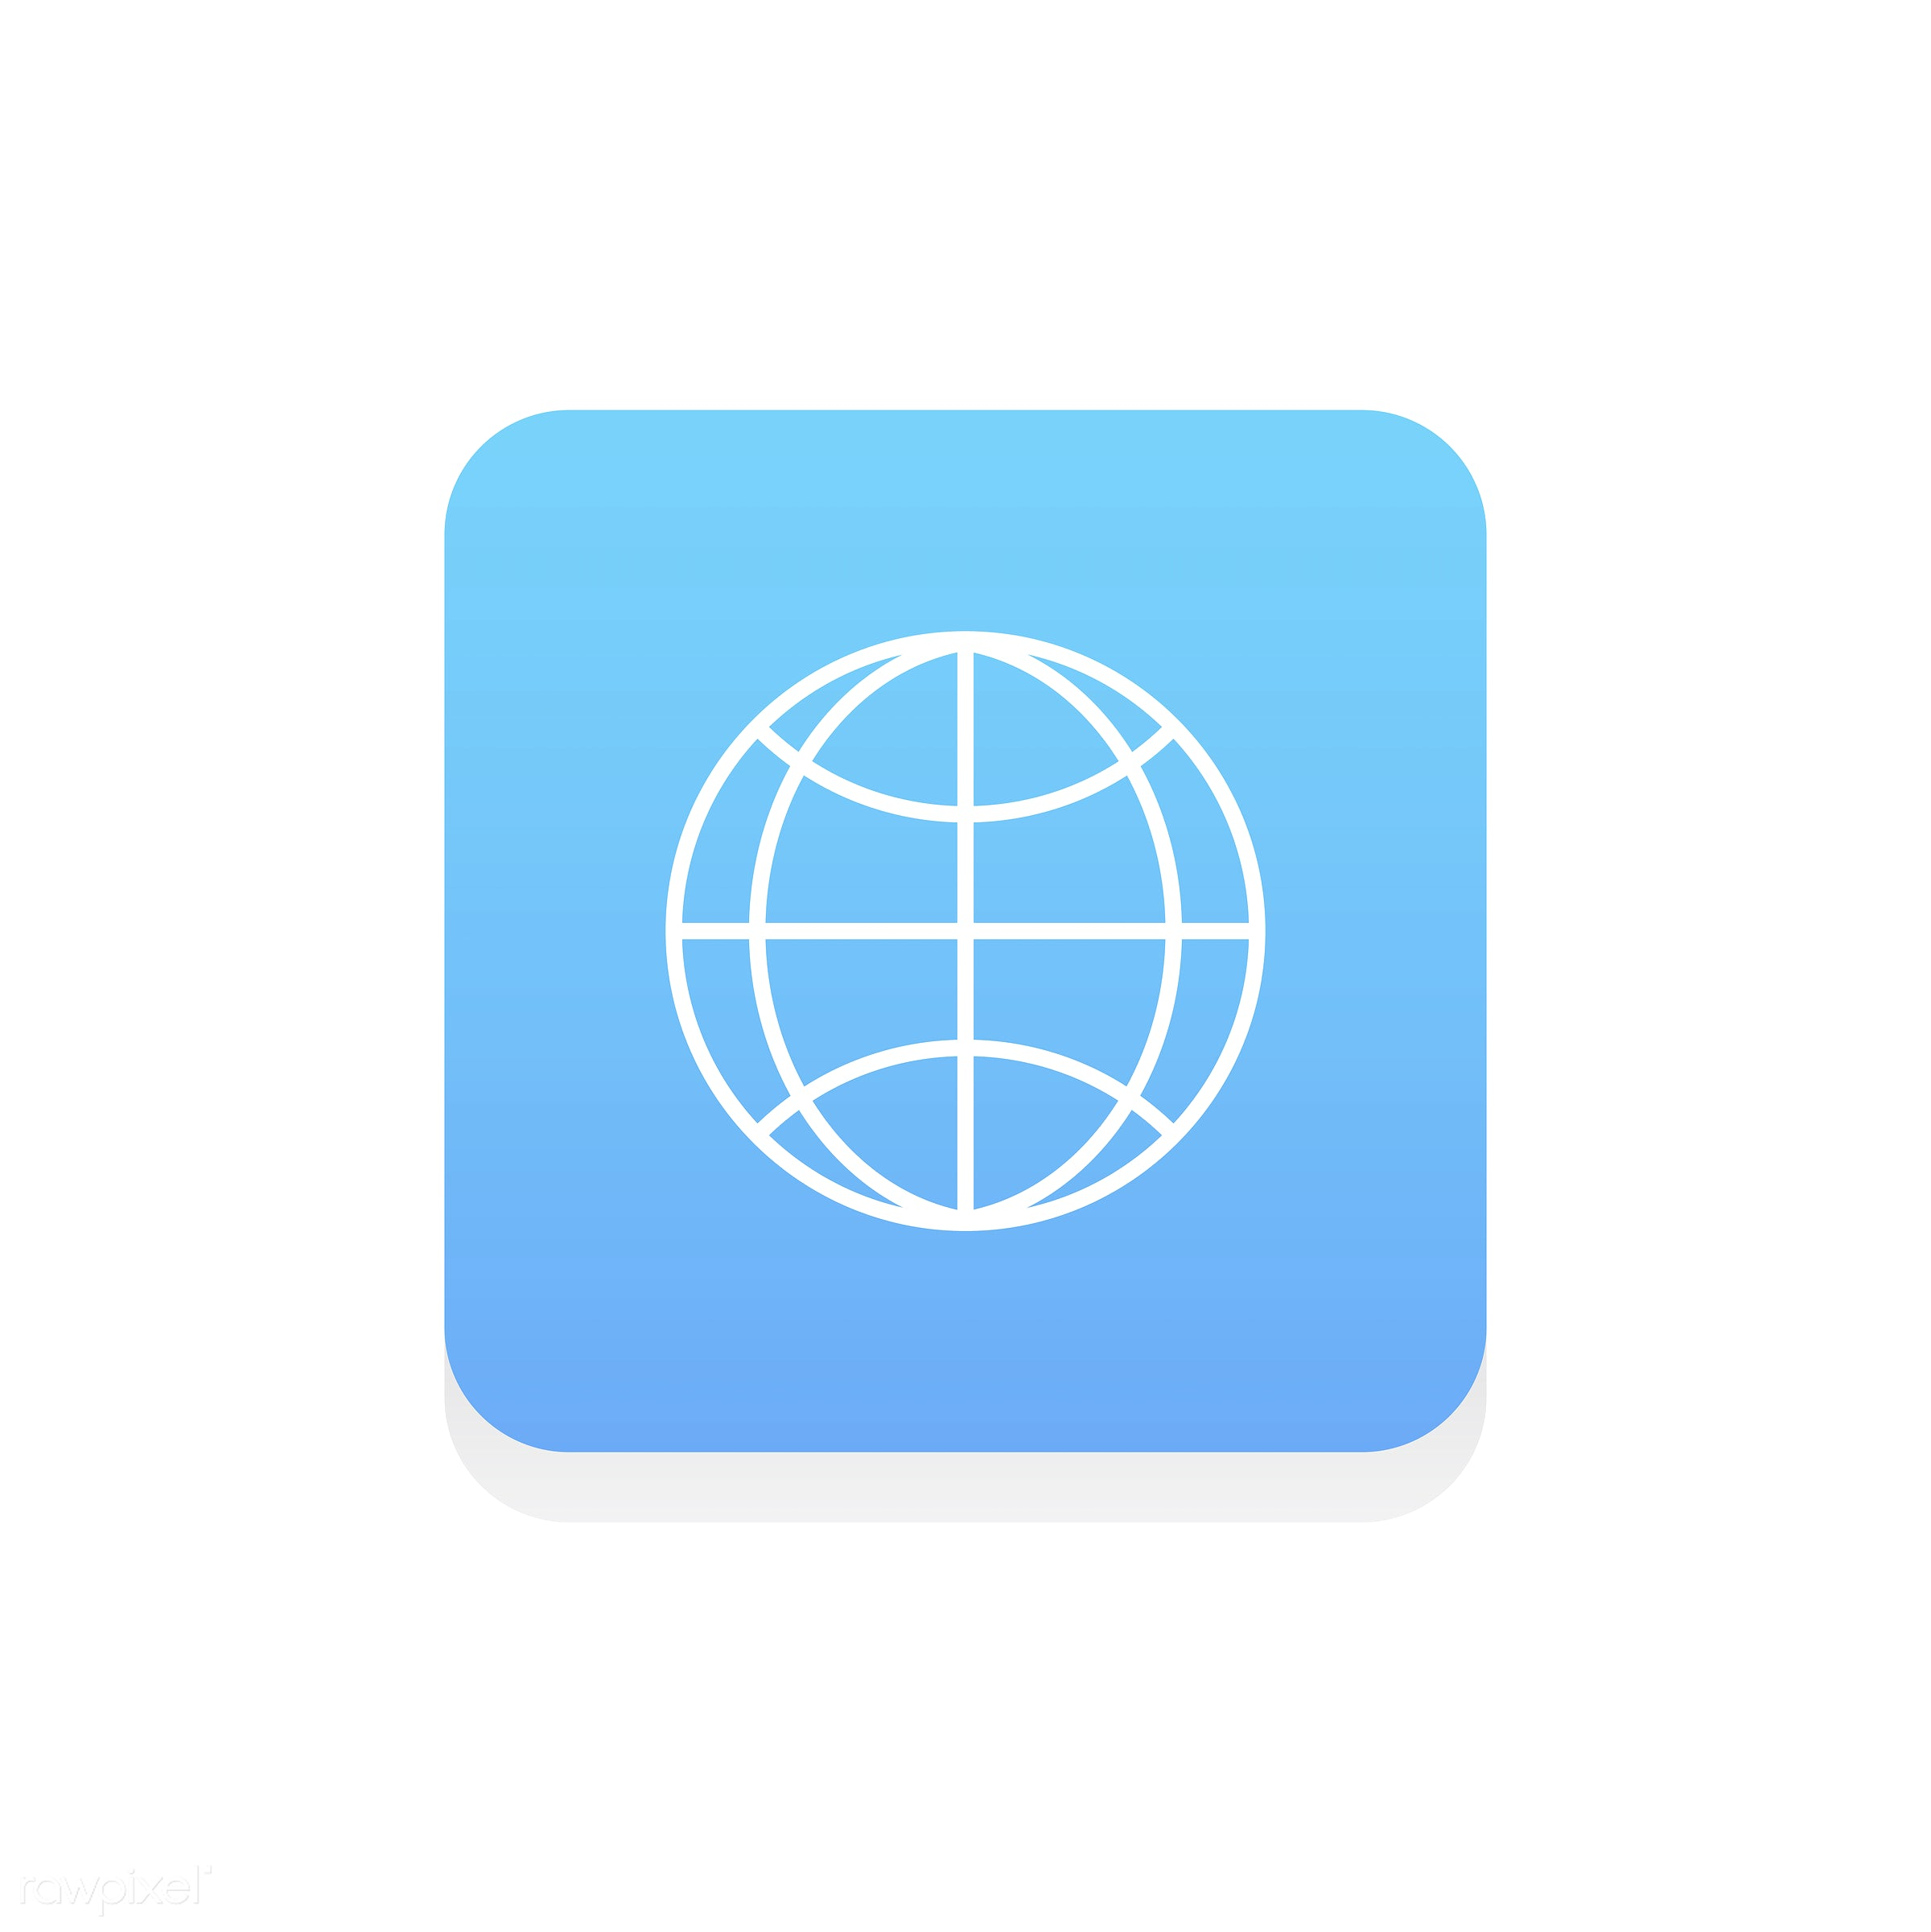 Vector of globe icon - design, flat, graphic, icon, illustration, isolated, layout, style, symbol, vector, web, website,...